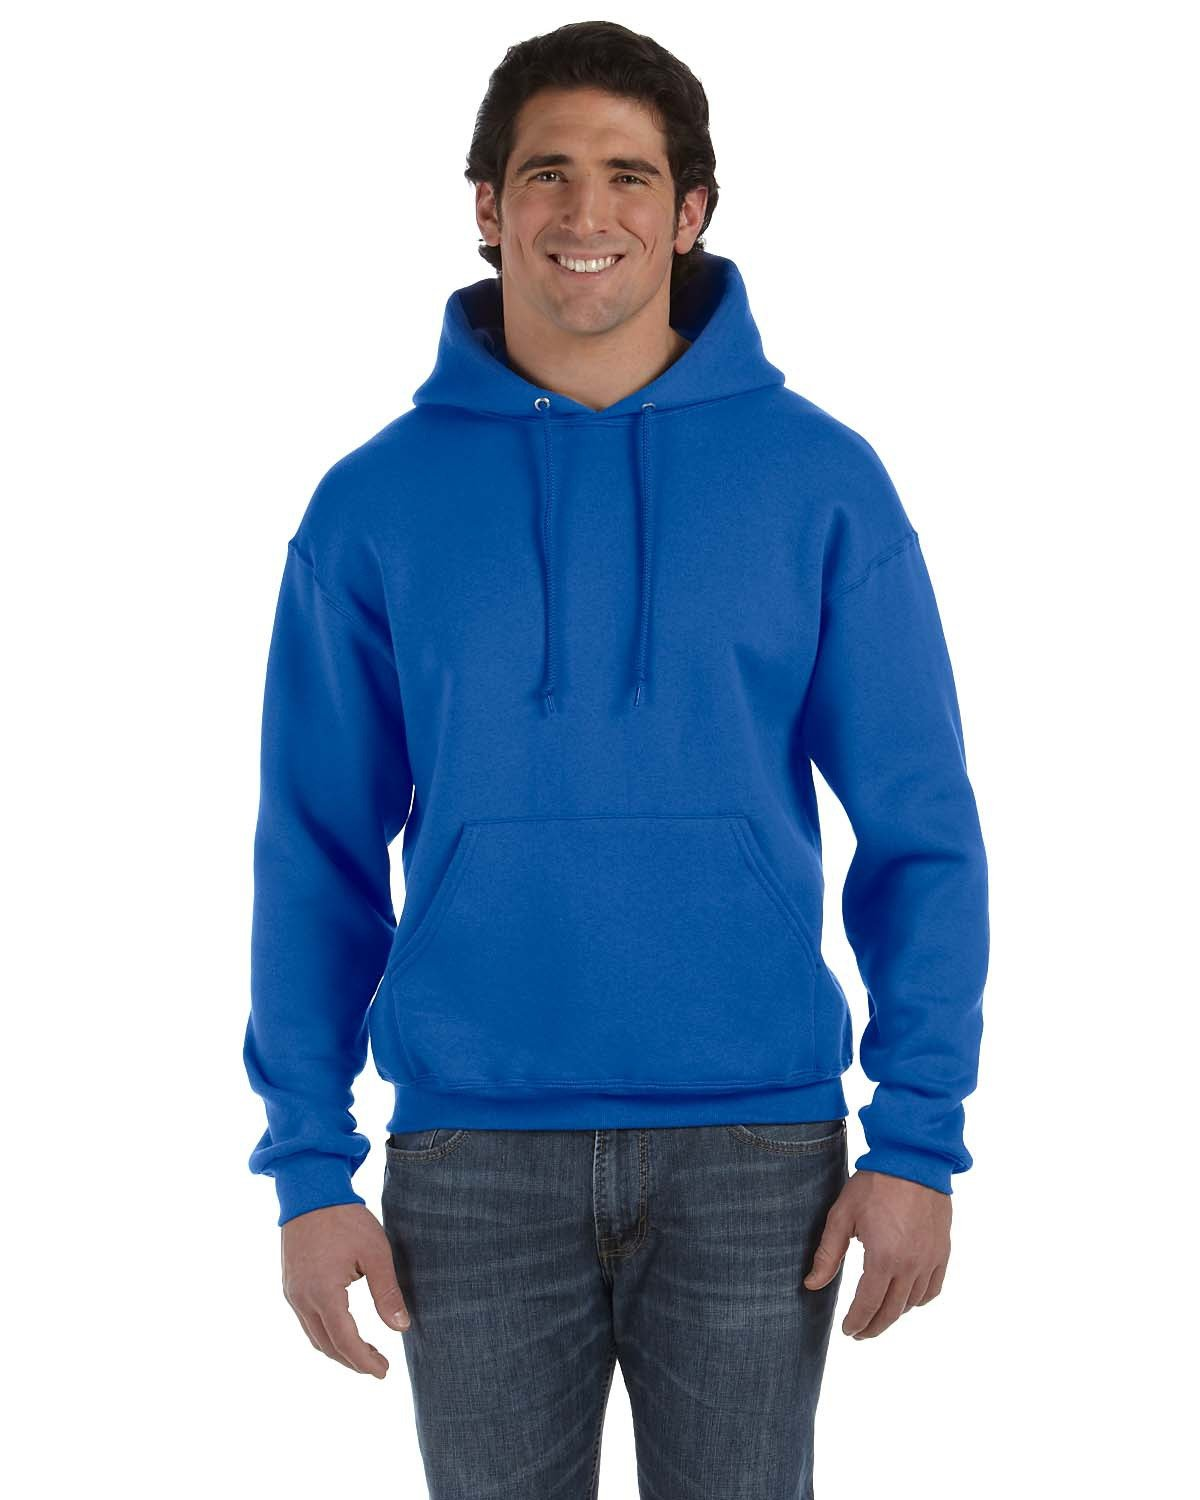 Fruit of the Loom Adult Supercotton™ Pullover Hooded Sweatshirt ROYAL